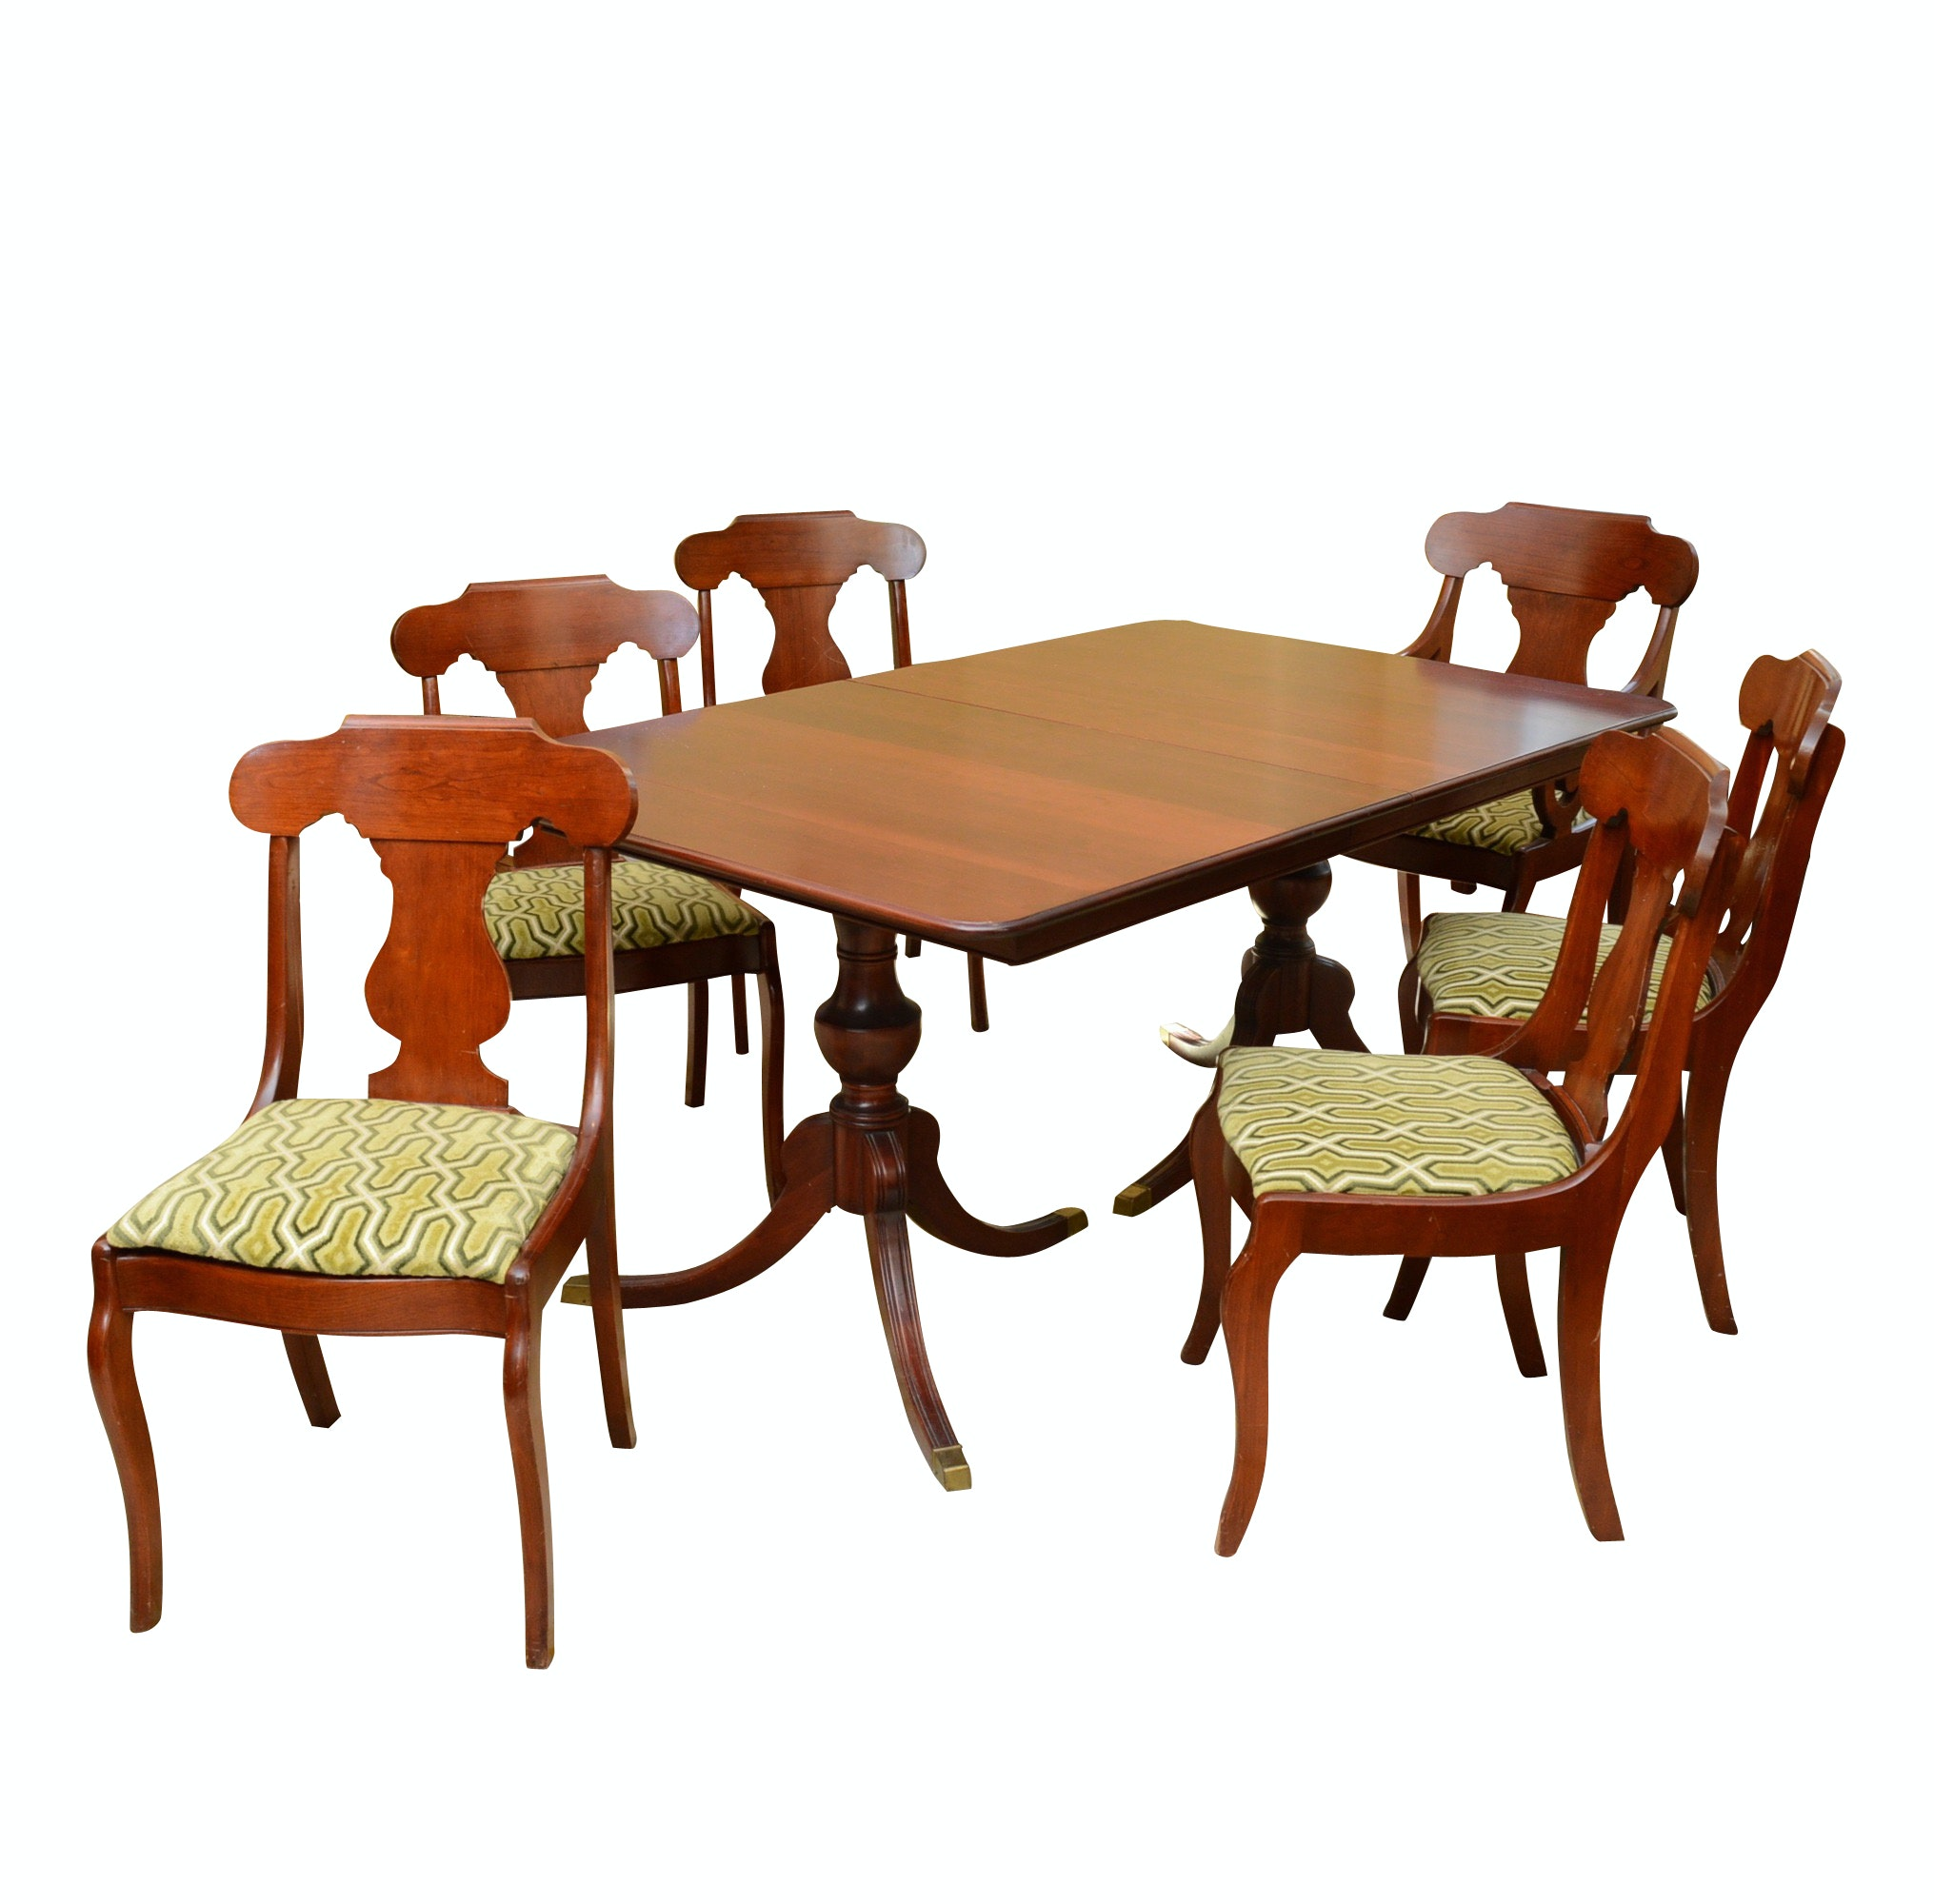 Vintage Cherry Dining Table with Six Chairs Upholstered in Carved Velvet